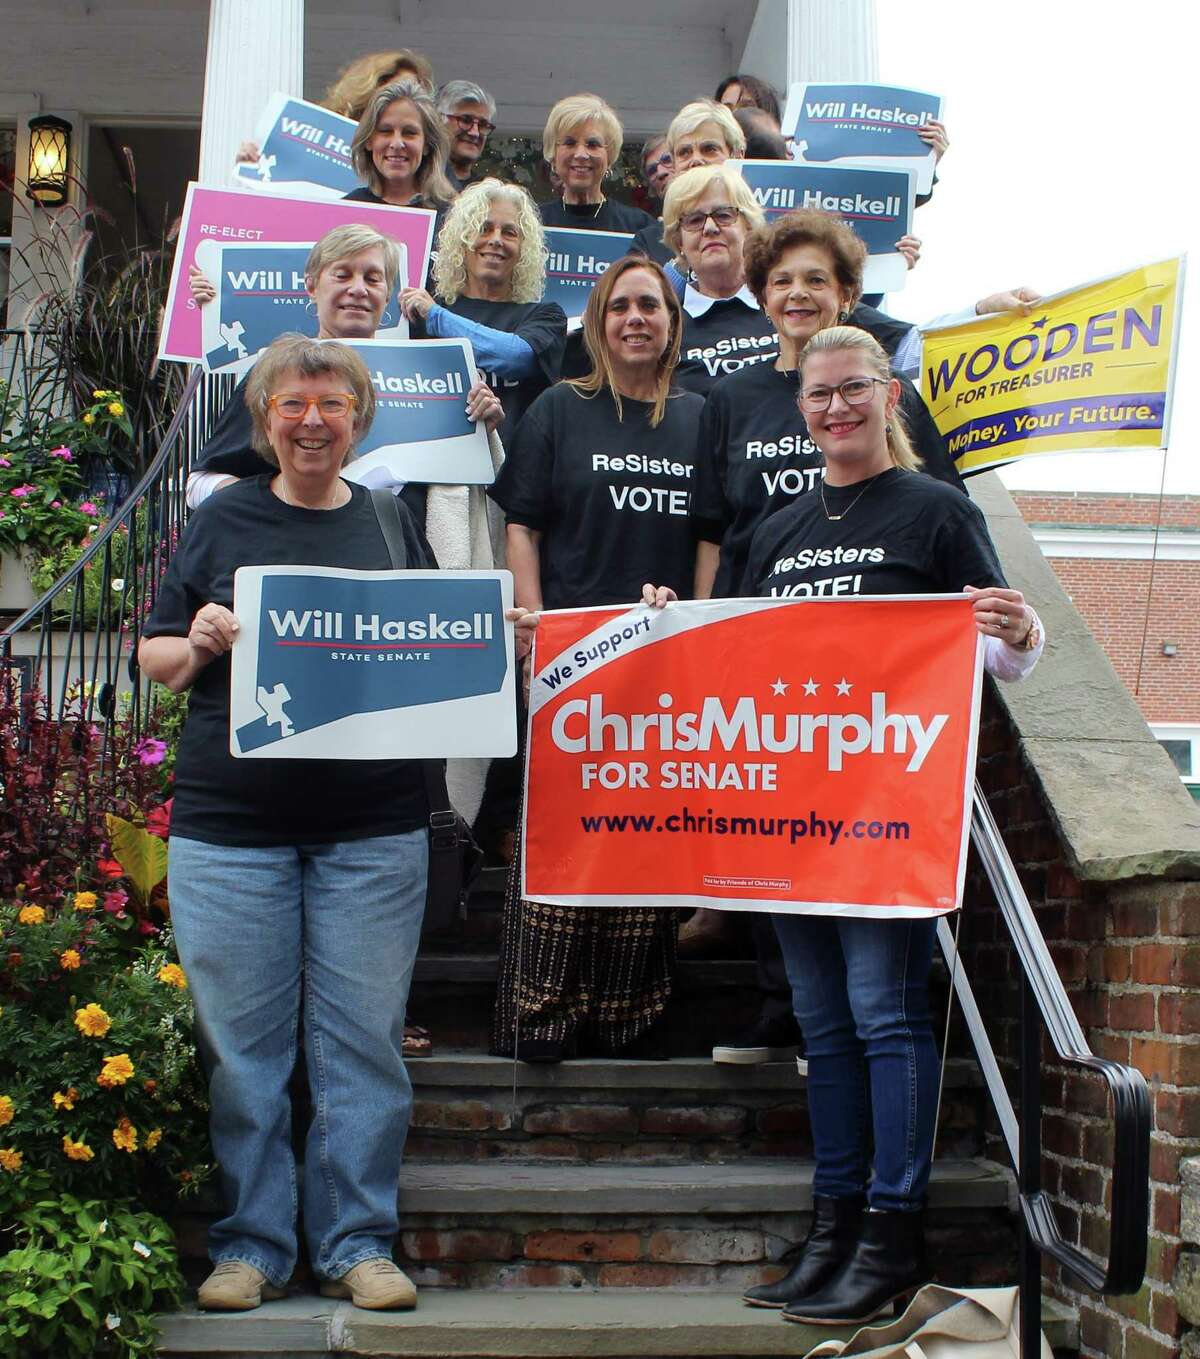 The Westport-based political organizing group the Resisters poses in downtown Westport on Oct. 1.